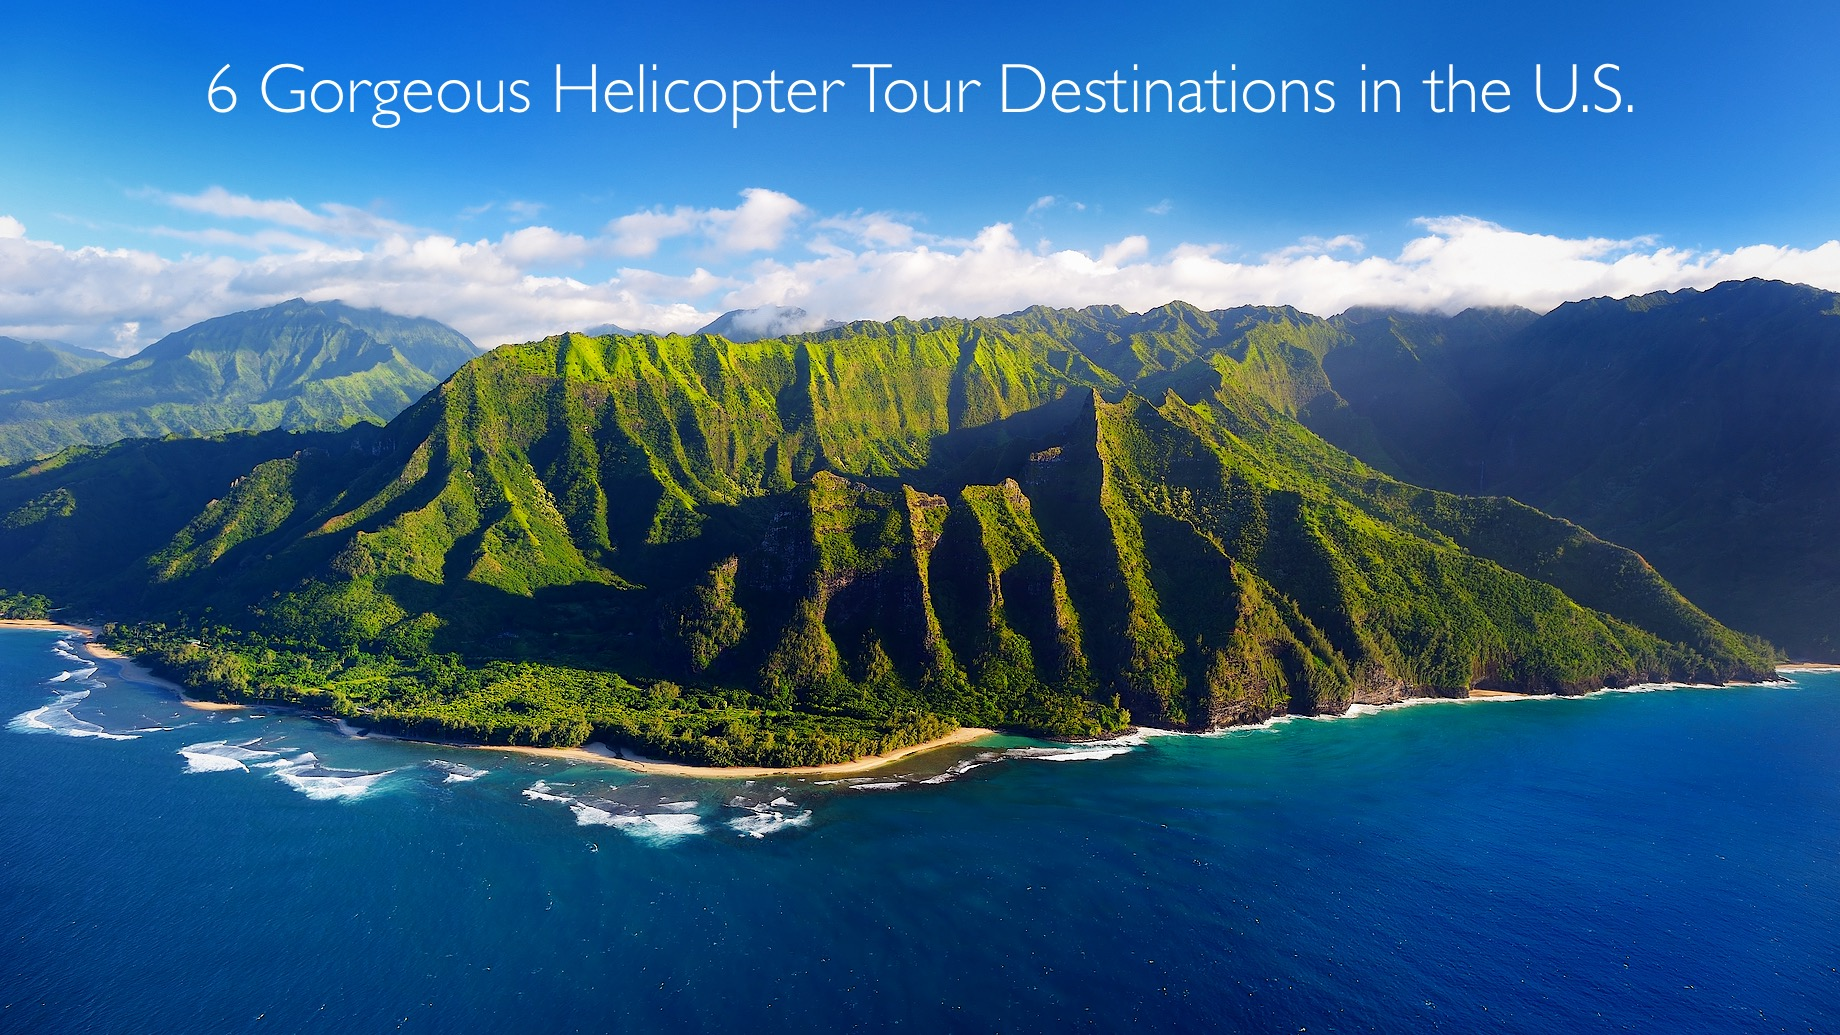 6 Gorgeous Helicopter Tour Destinations in the U.S.